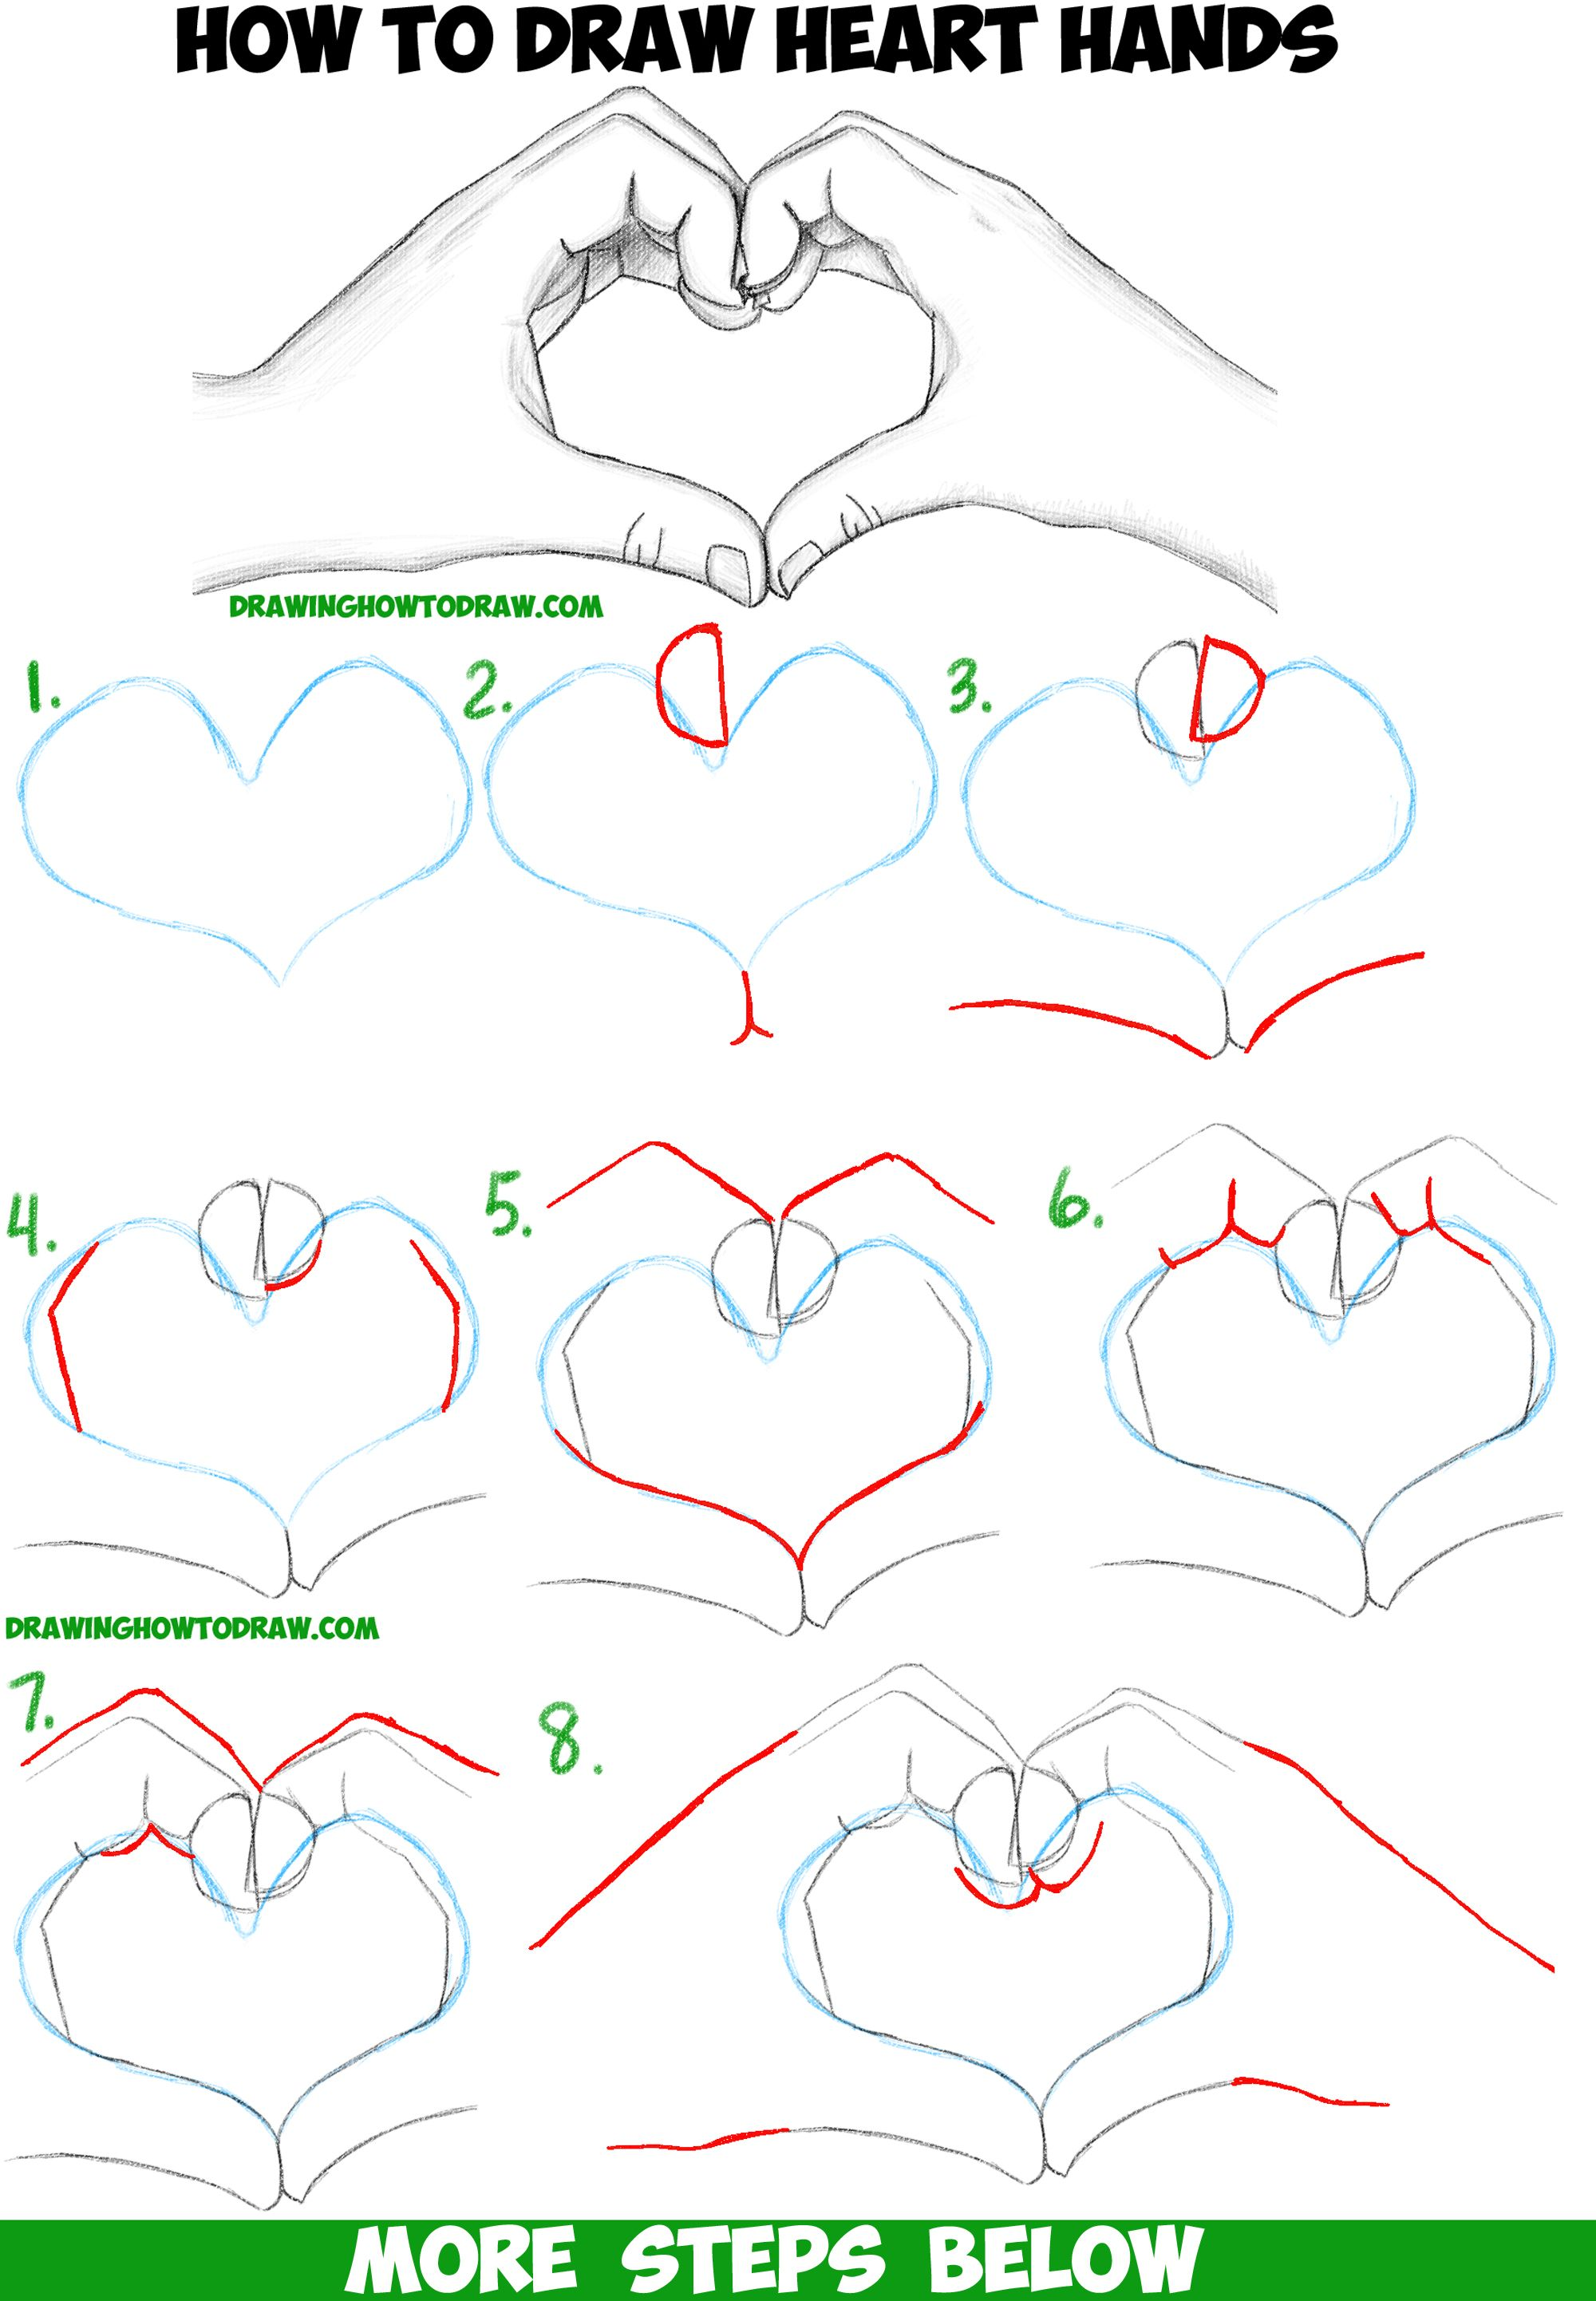 How to Draw Heart Hands in Easy to Follow Step by Step